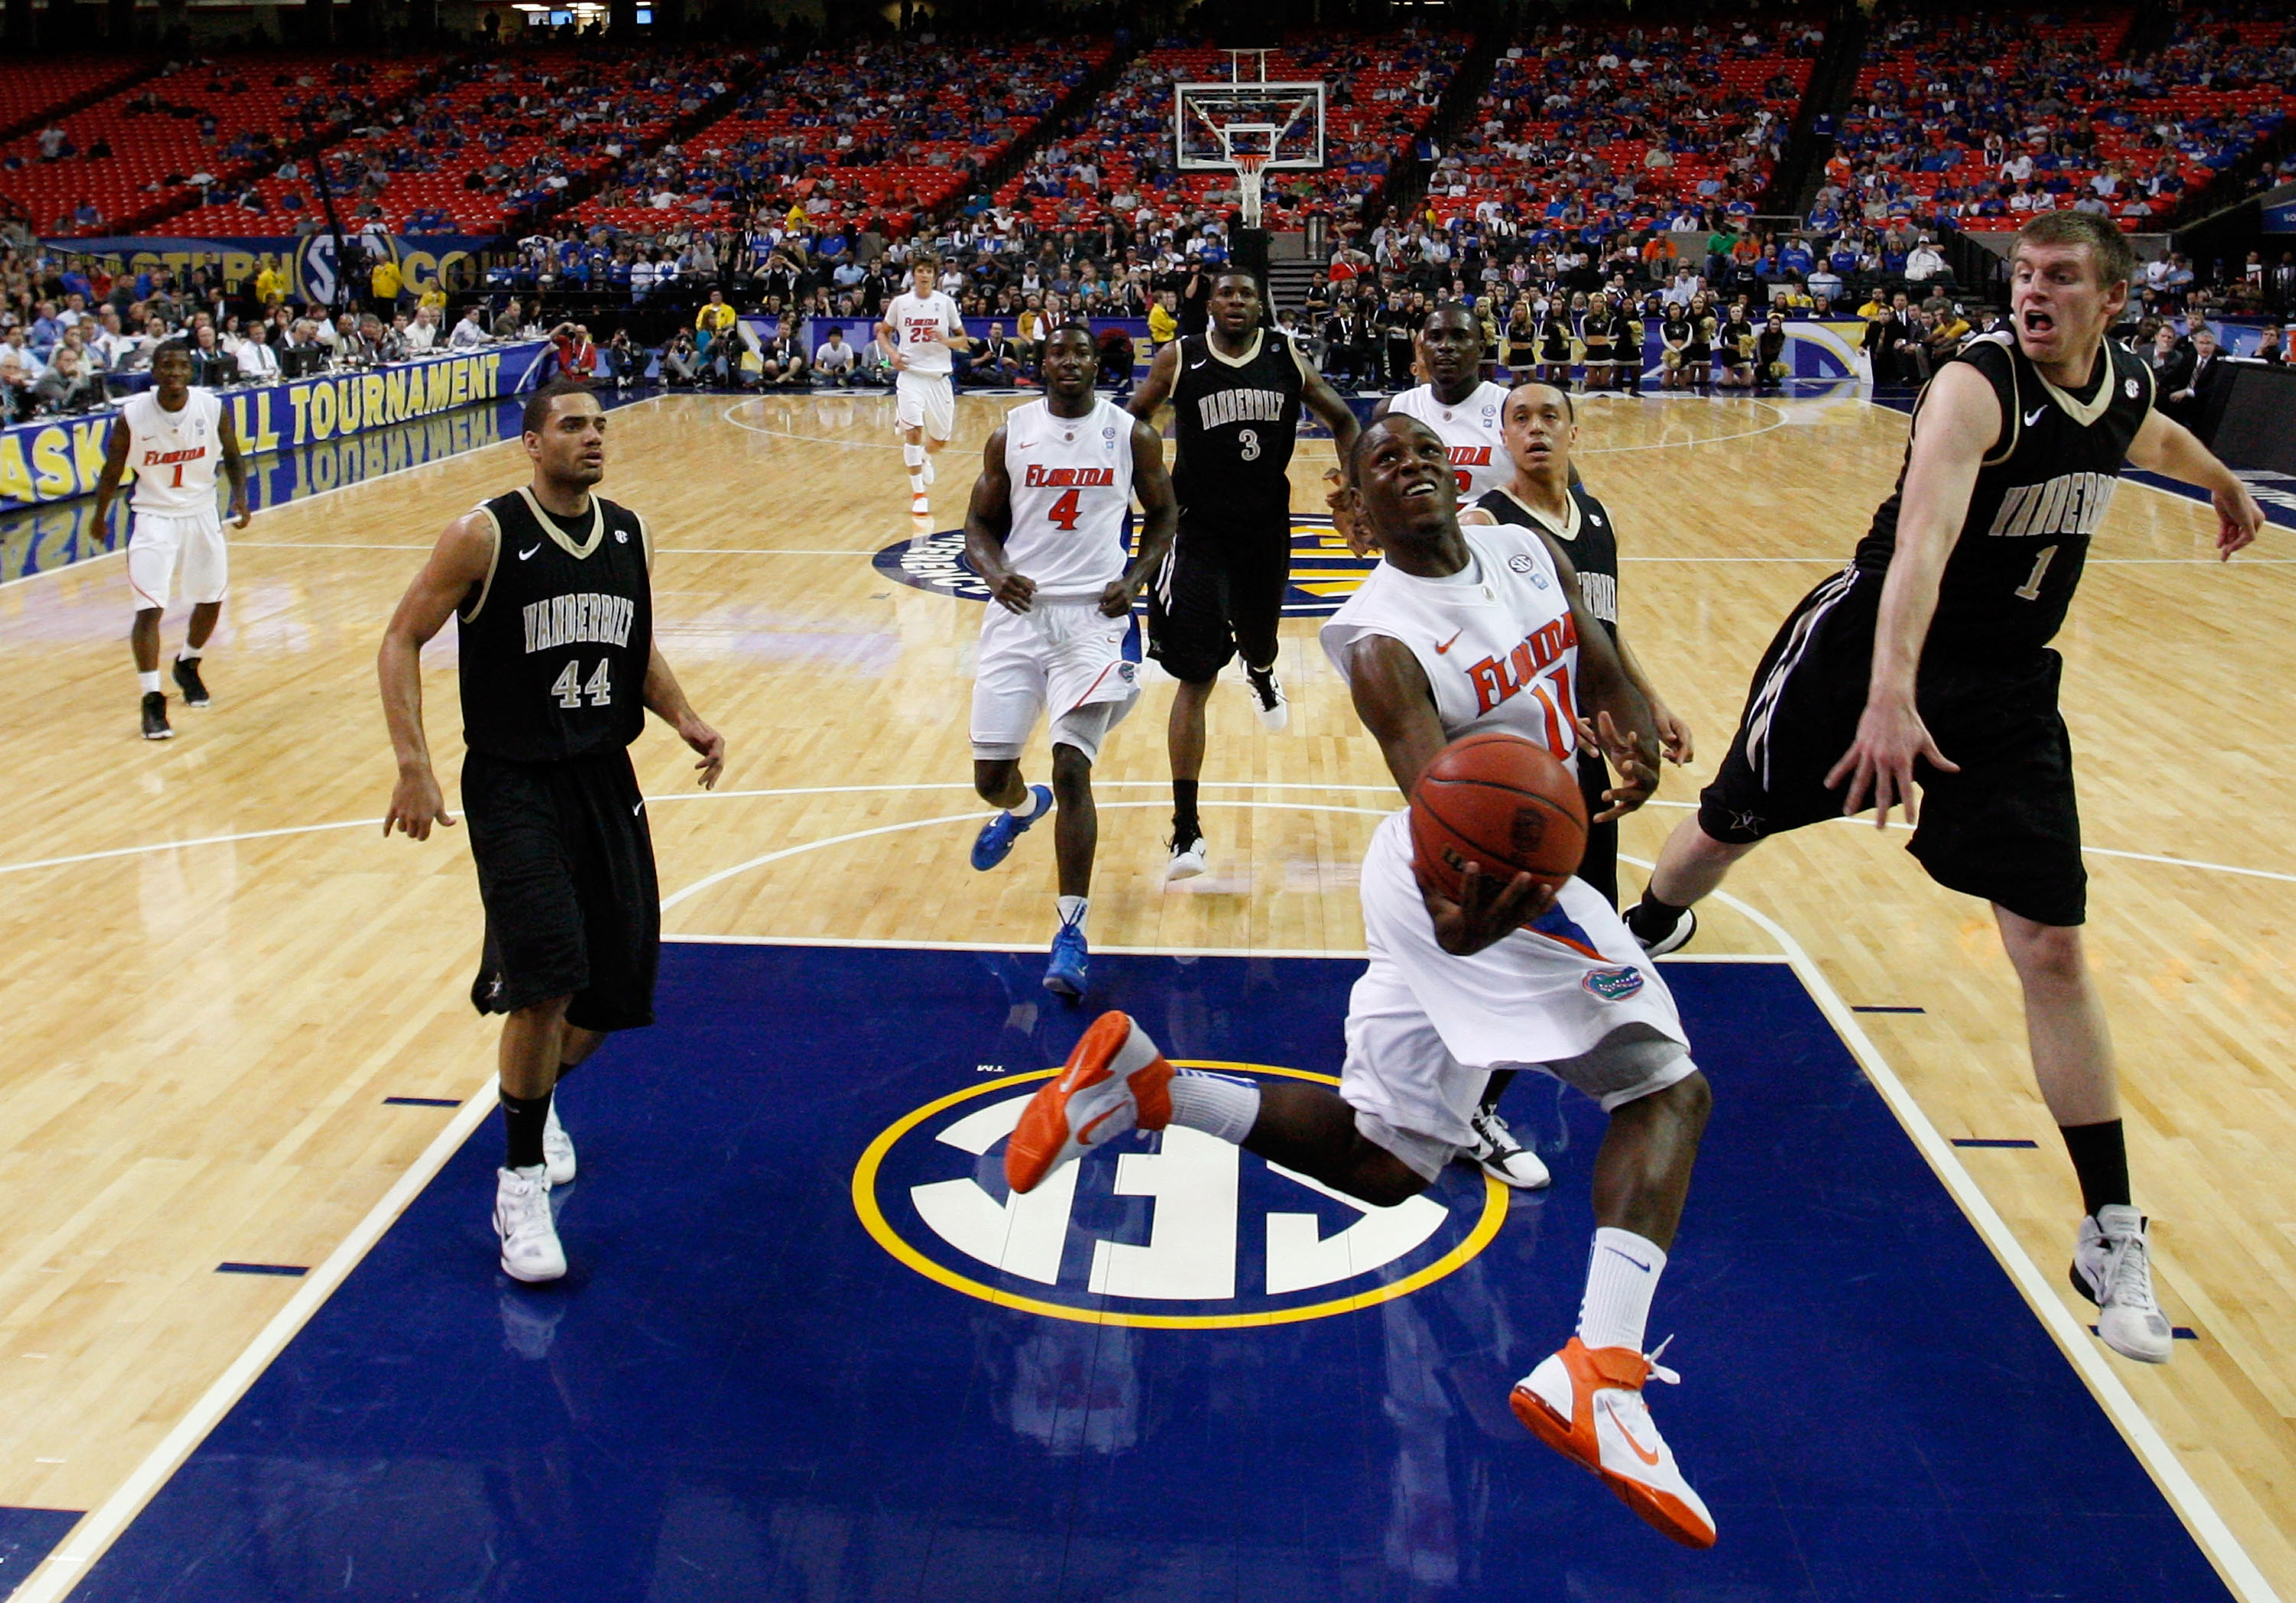 ATLANTA, GA - MARCH 12:  Erving Walker #11 of the Florida Gators shoots against Brad Tinsley #1 of the Vanderbilt Commodores during the semifinals of the SEC Men's Basketball Tournament at Georgia Dome on March 12, 2011 in Atlanta, Georgia.  (Photo by Kev